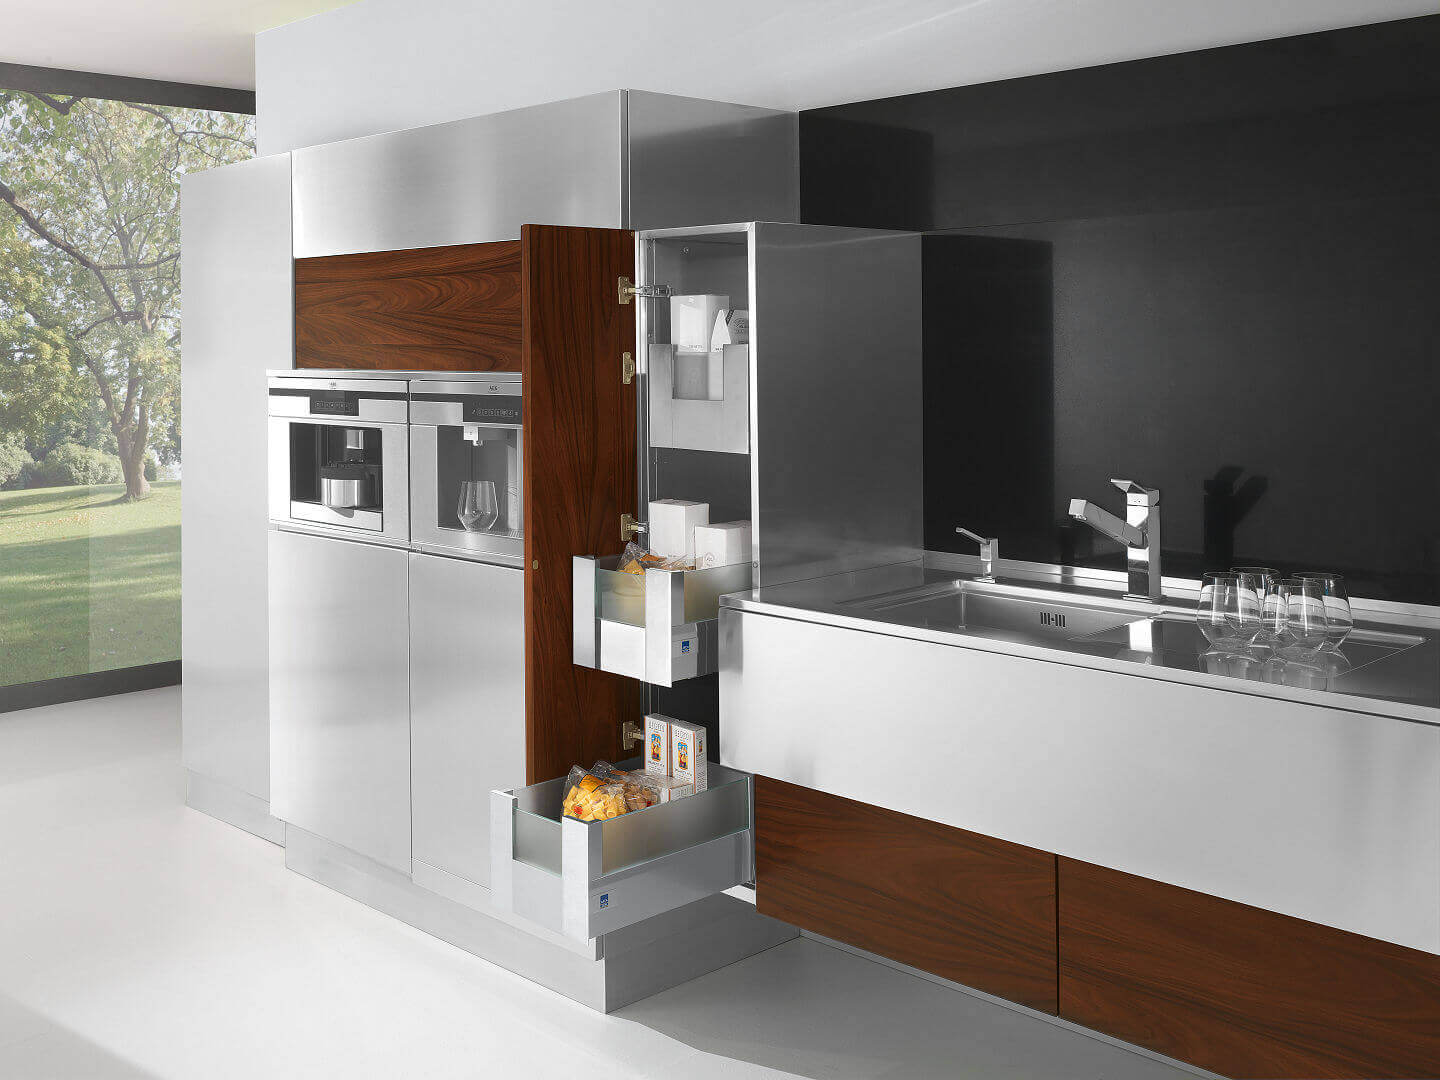 Arca Cucine Italy - Domestic stainless steel kitchens - 24 - Retro - 0002